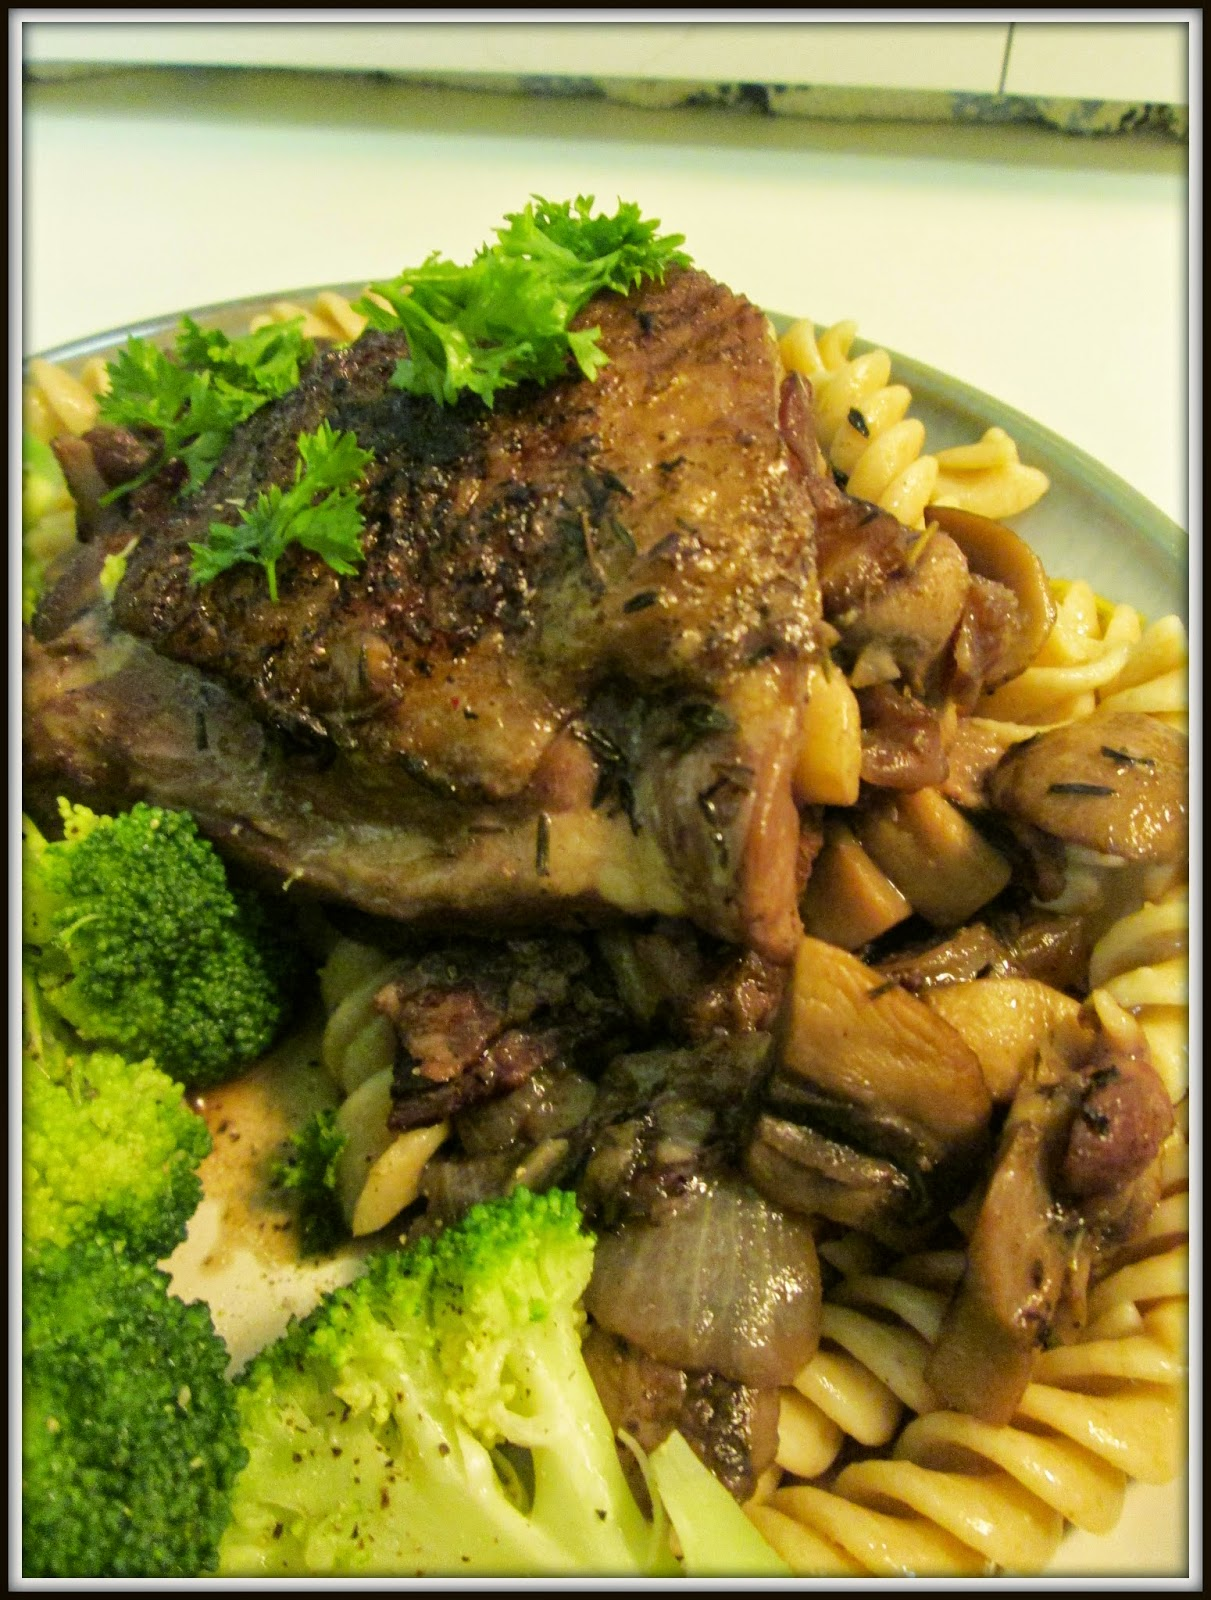 Coq au Vin (Rooster with Wine)